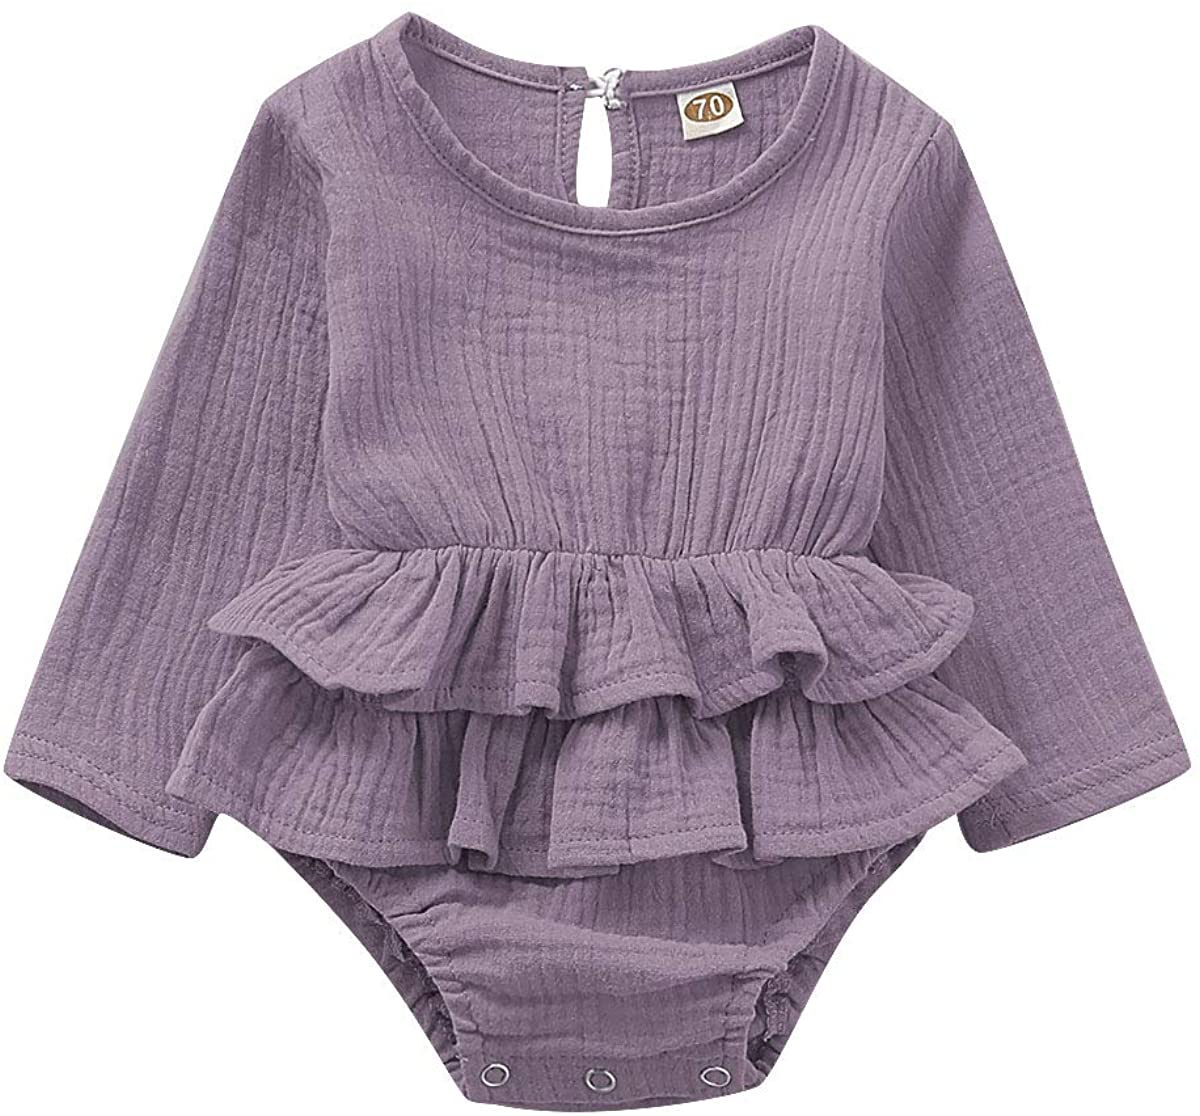 FOMOYUU Baby Girl Fall Romper Sweater Clothes Newborn Infant Ruffle Jumpsuit Autumn Spring Pure Purple